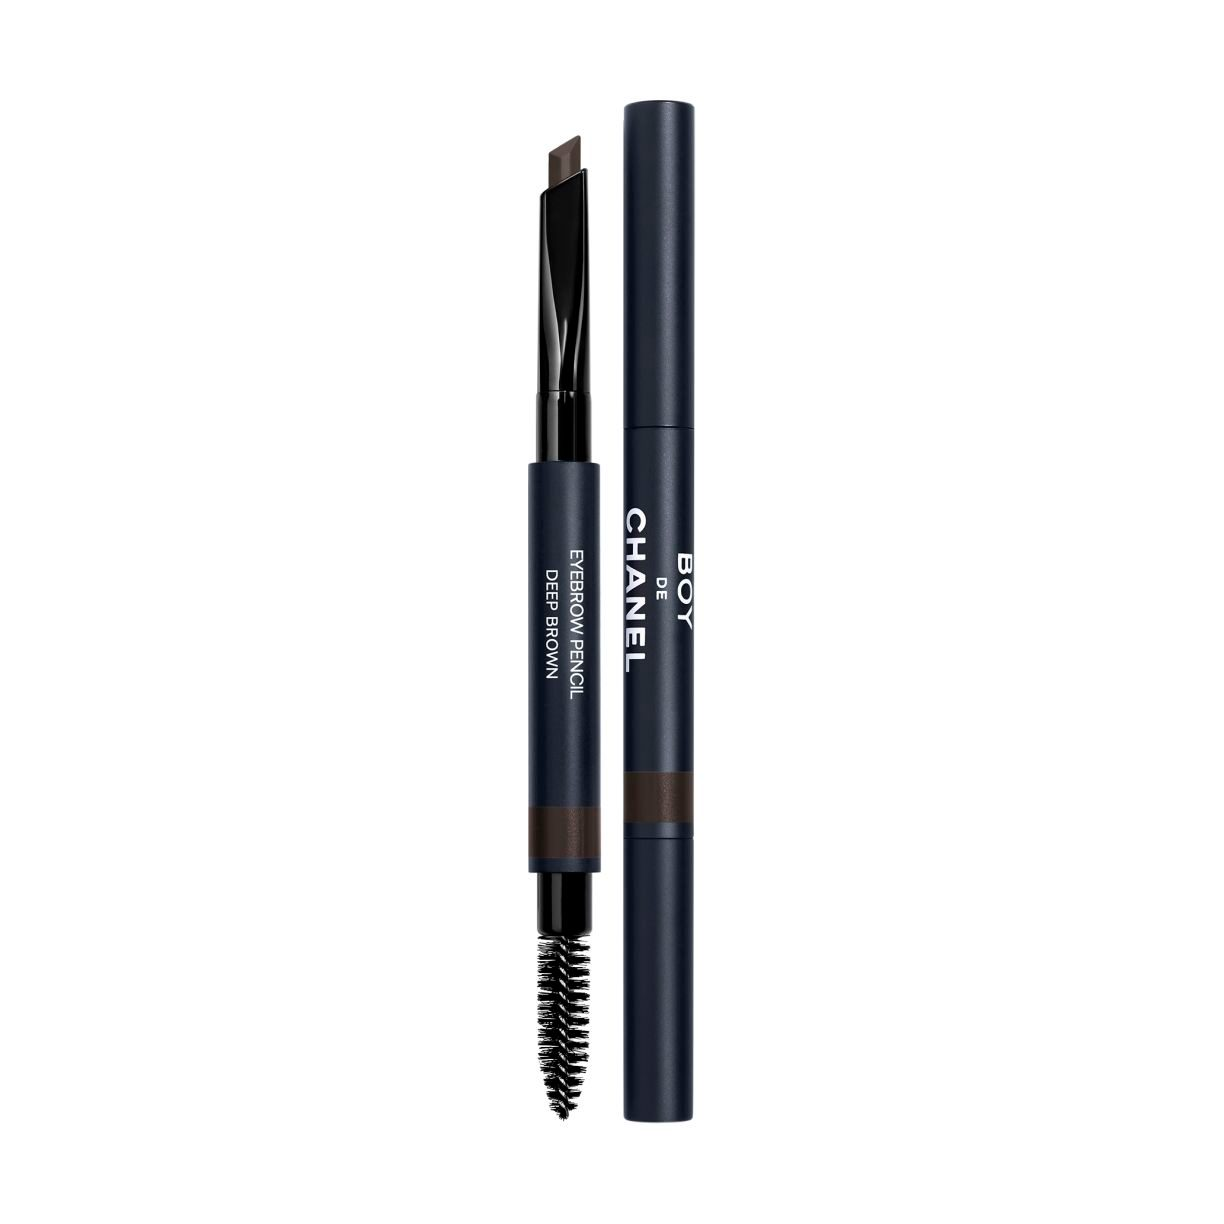 BOY DE CHANEL LE STYLO SOURCILS STILO SOPRACCIGLIA WATERPROOF E LUNGA TENUTA 206 - DEEP BROWN